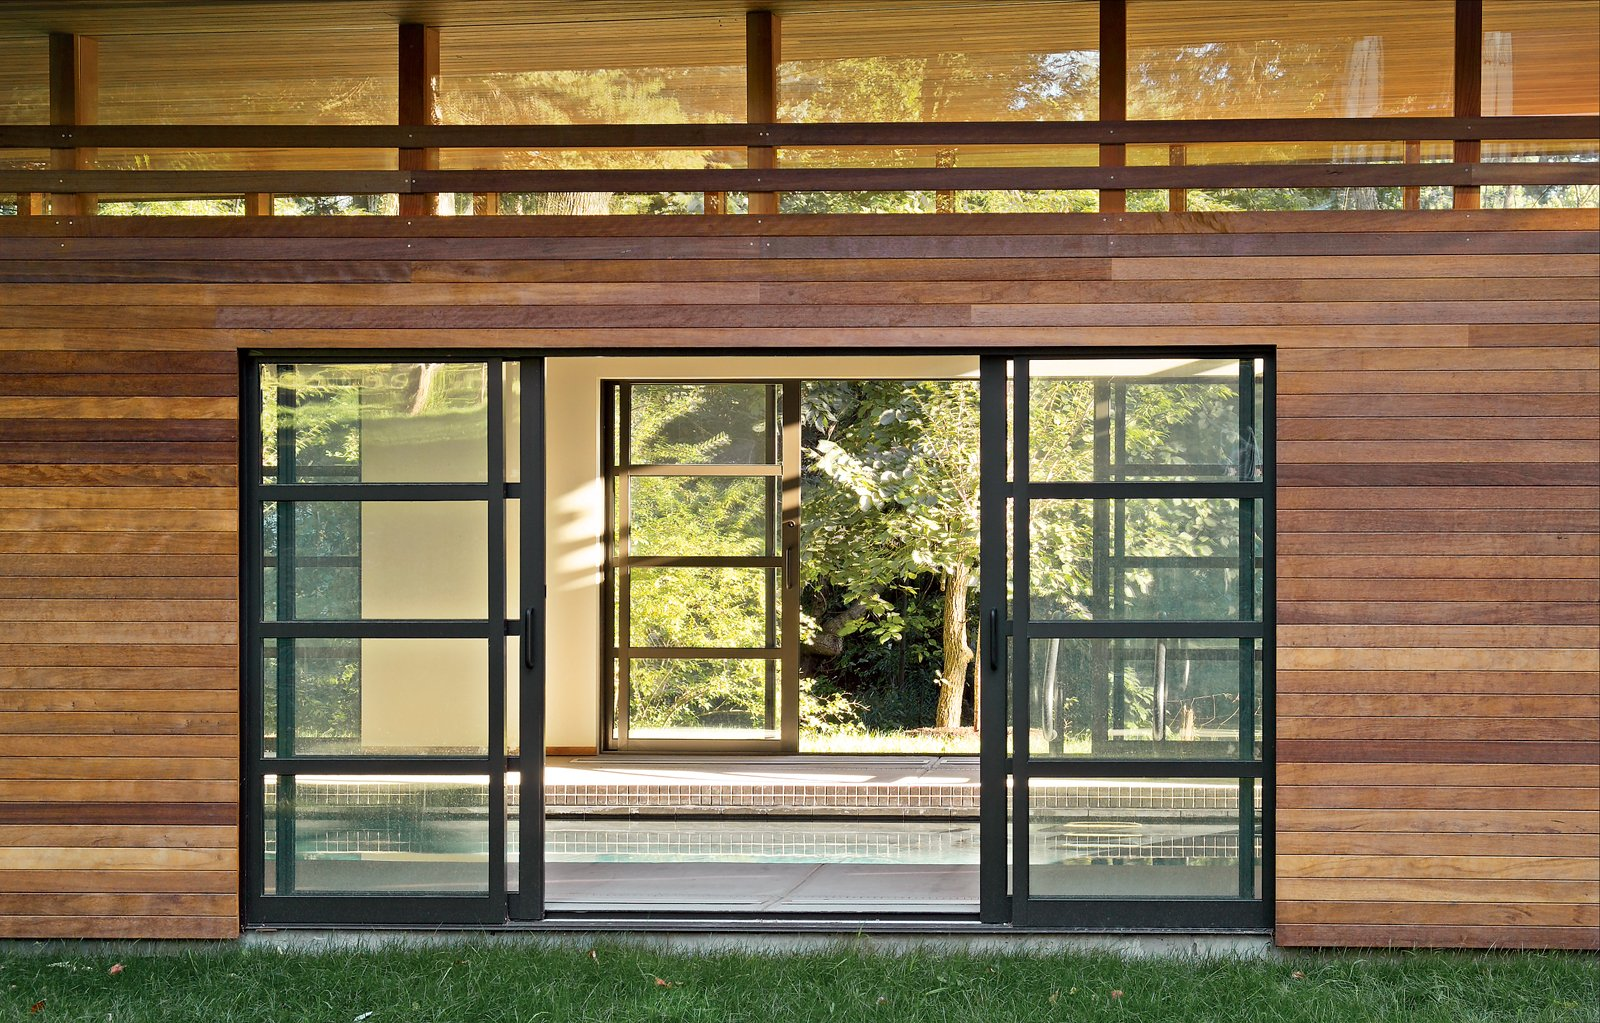 Sliding glass doors open to reveal the interior of the pool house, which boasts a line of clerestory windows just below the roof. Tagged: Doors.  Shining Examples of Clerestory Windows by Luke Hopping from Skinny Dip